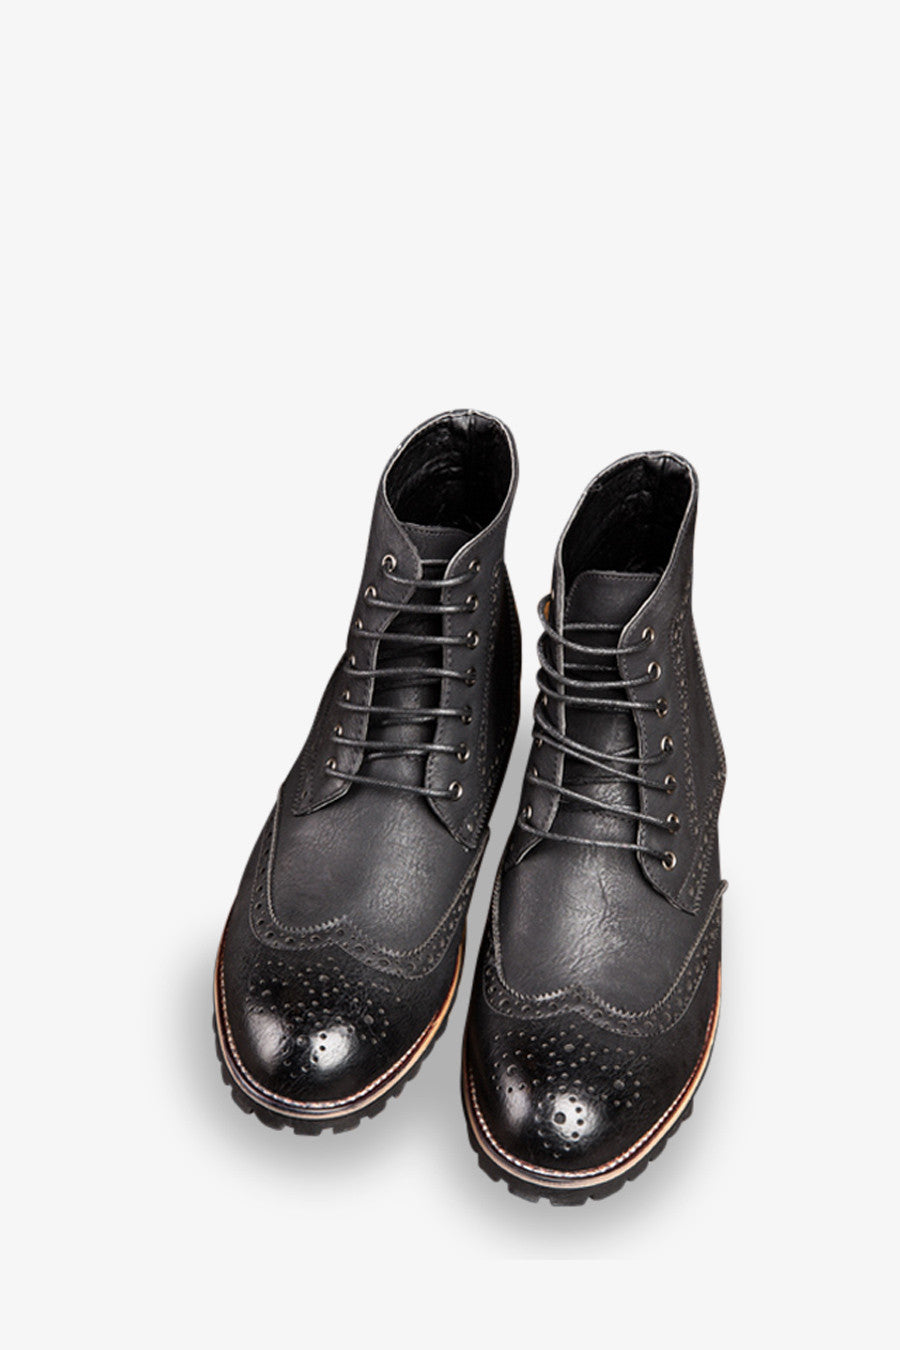 Classic Brogue Boots In Black